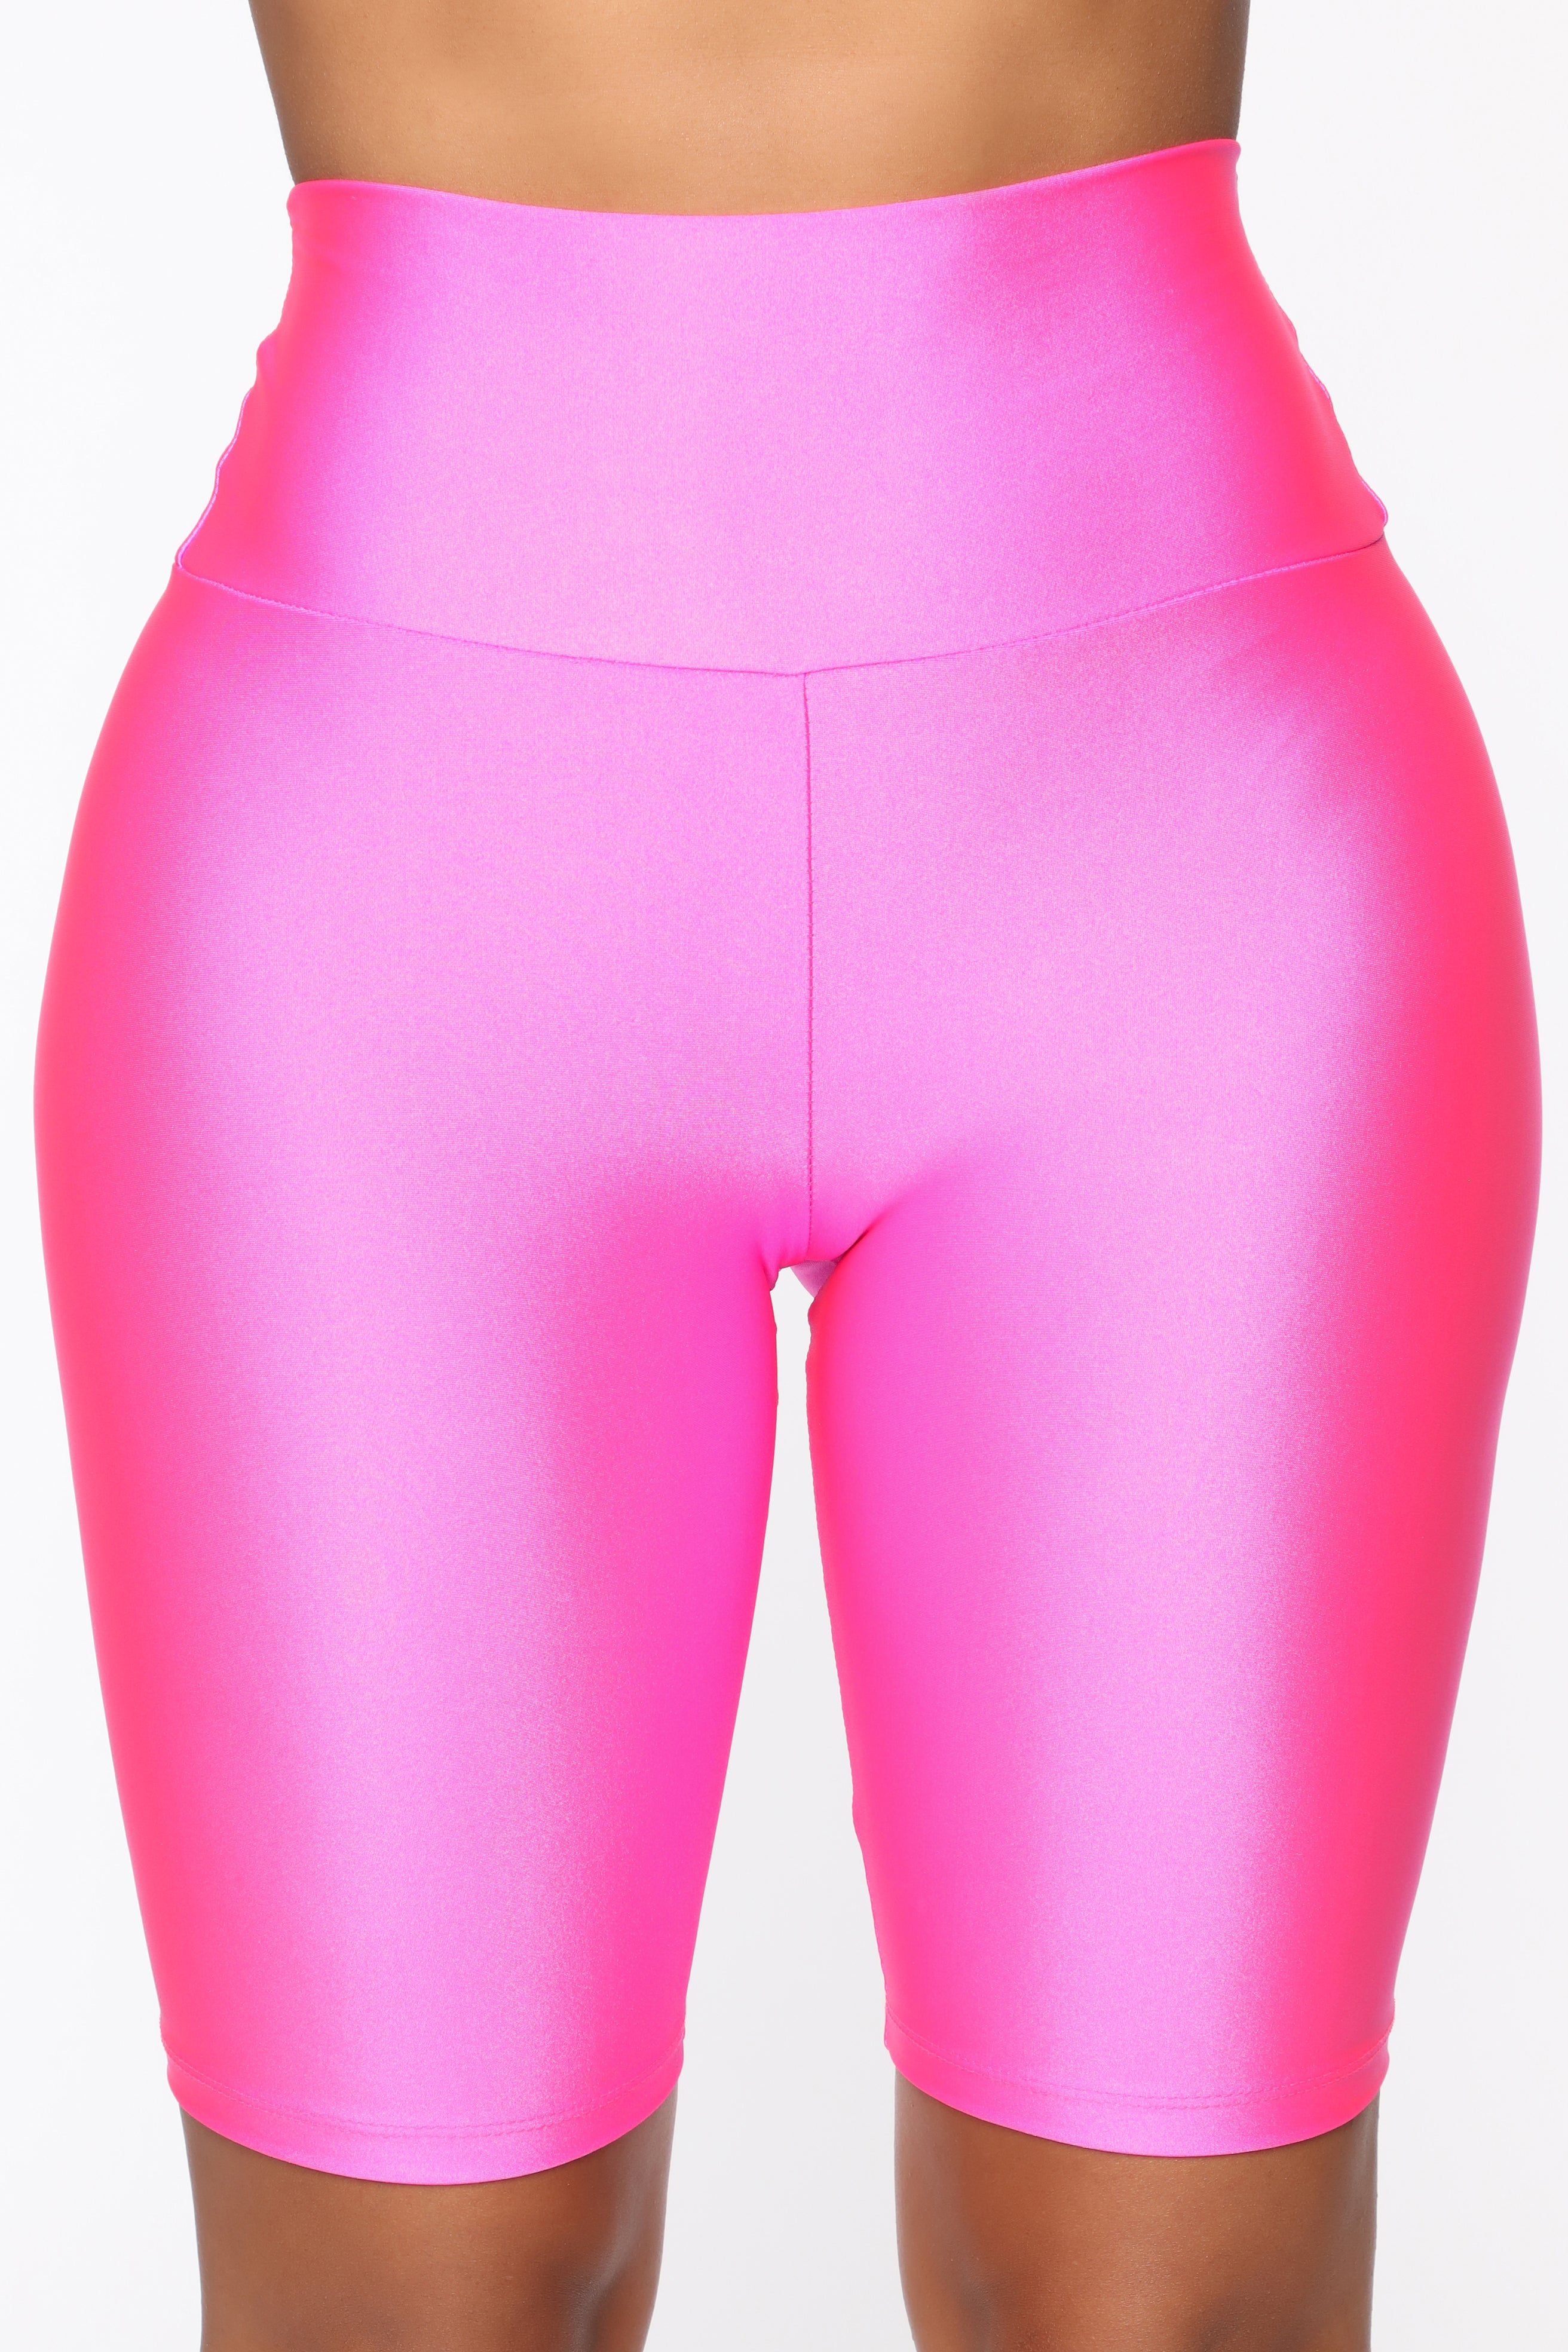 Matures images daniella in pink tights